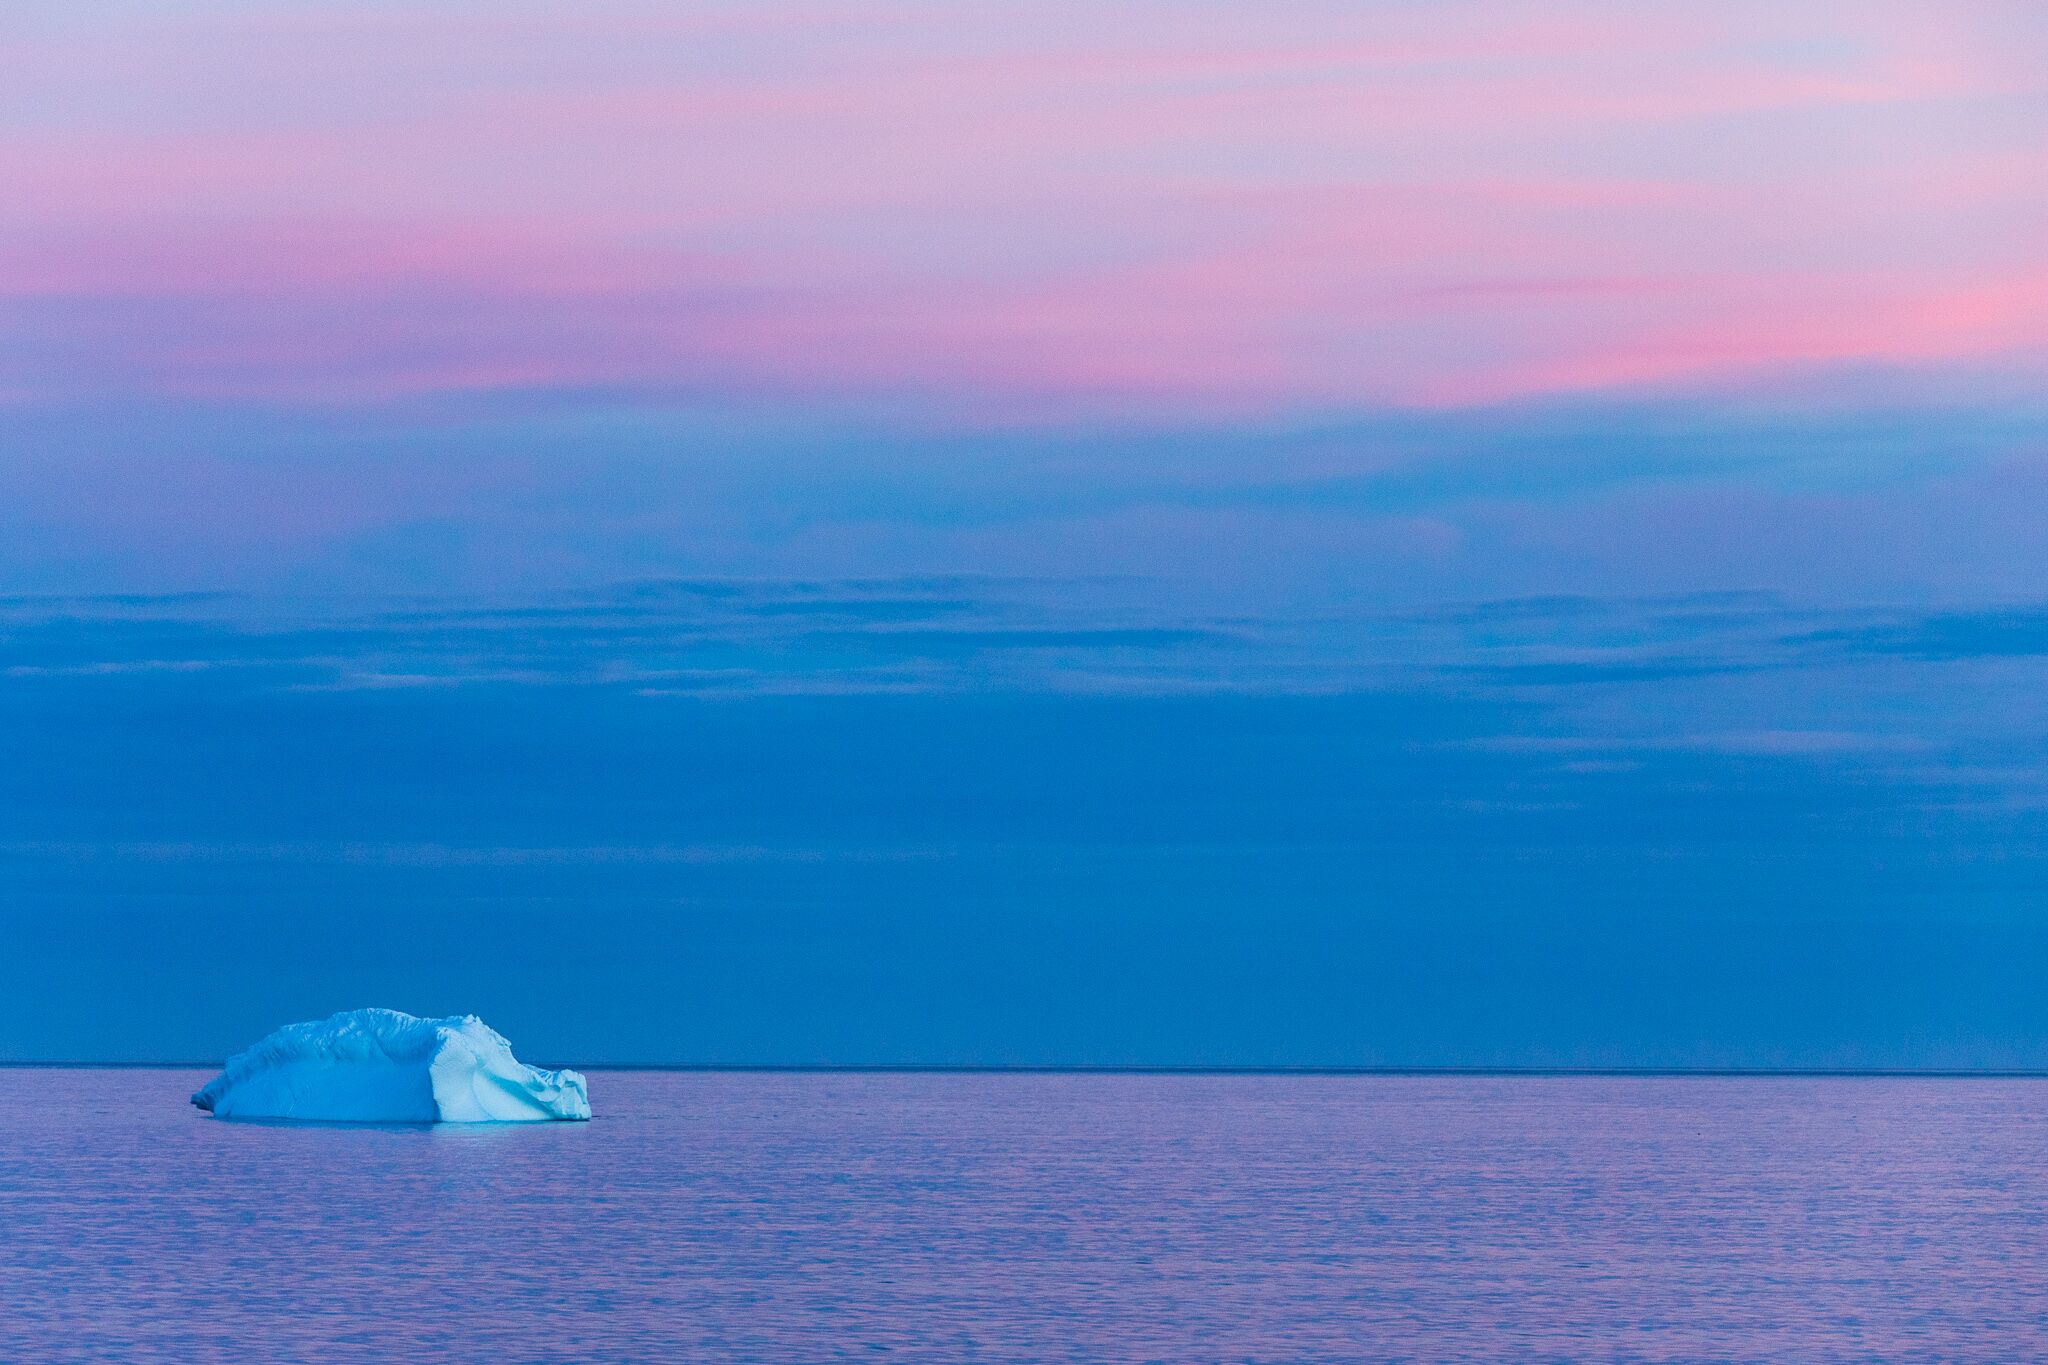 Solitary iceberg on the ocean during sunset. The sky and ocean are blue and purple sunset colours